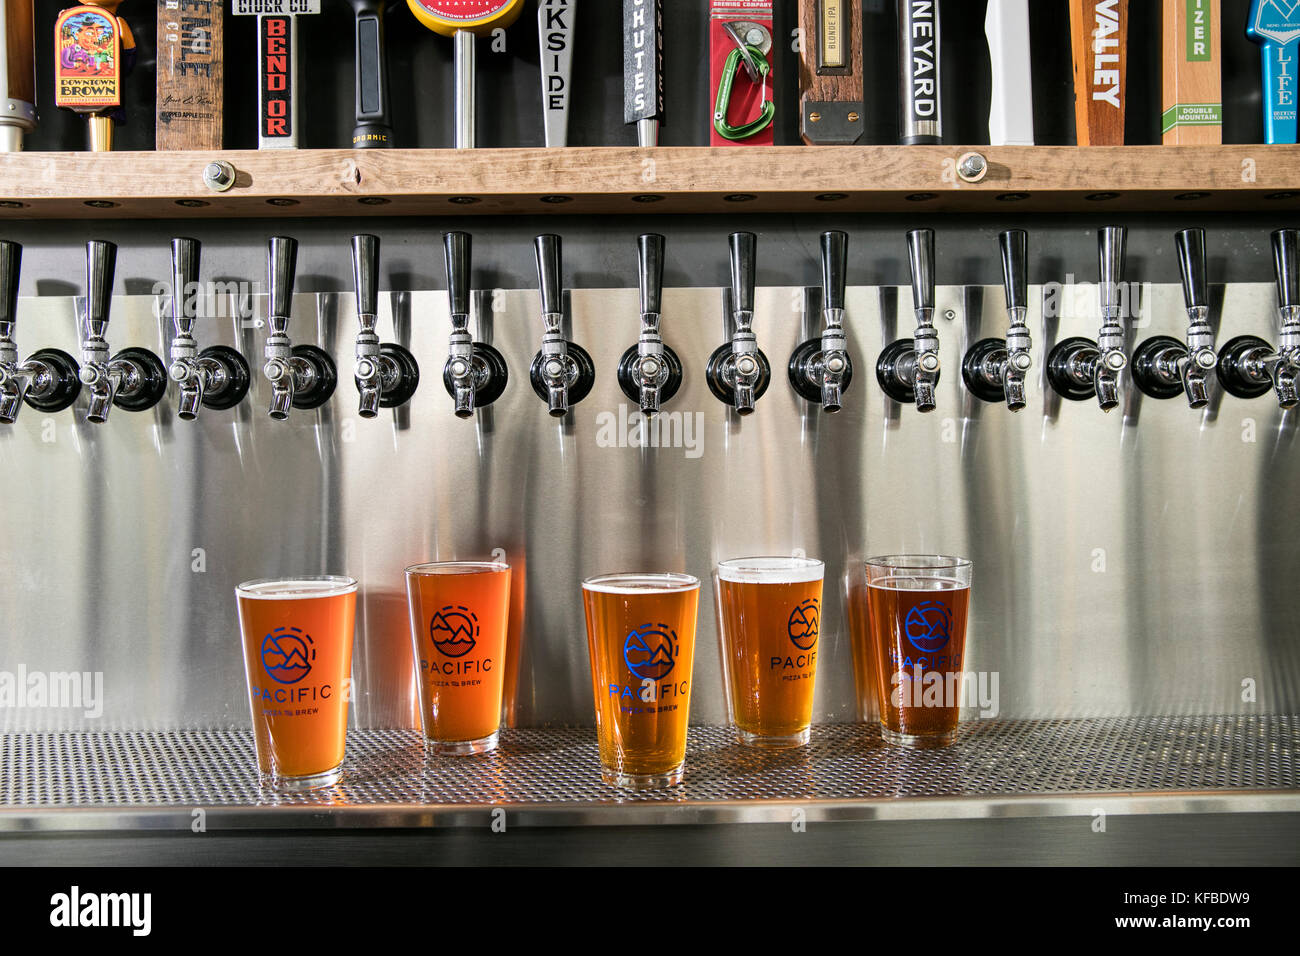 USA, Oregon, Bend, Pacific Pizza and Brew, pint glasses of brew beer - Stock Image